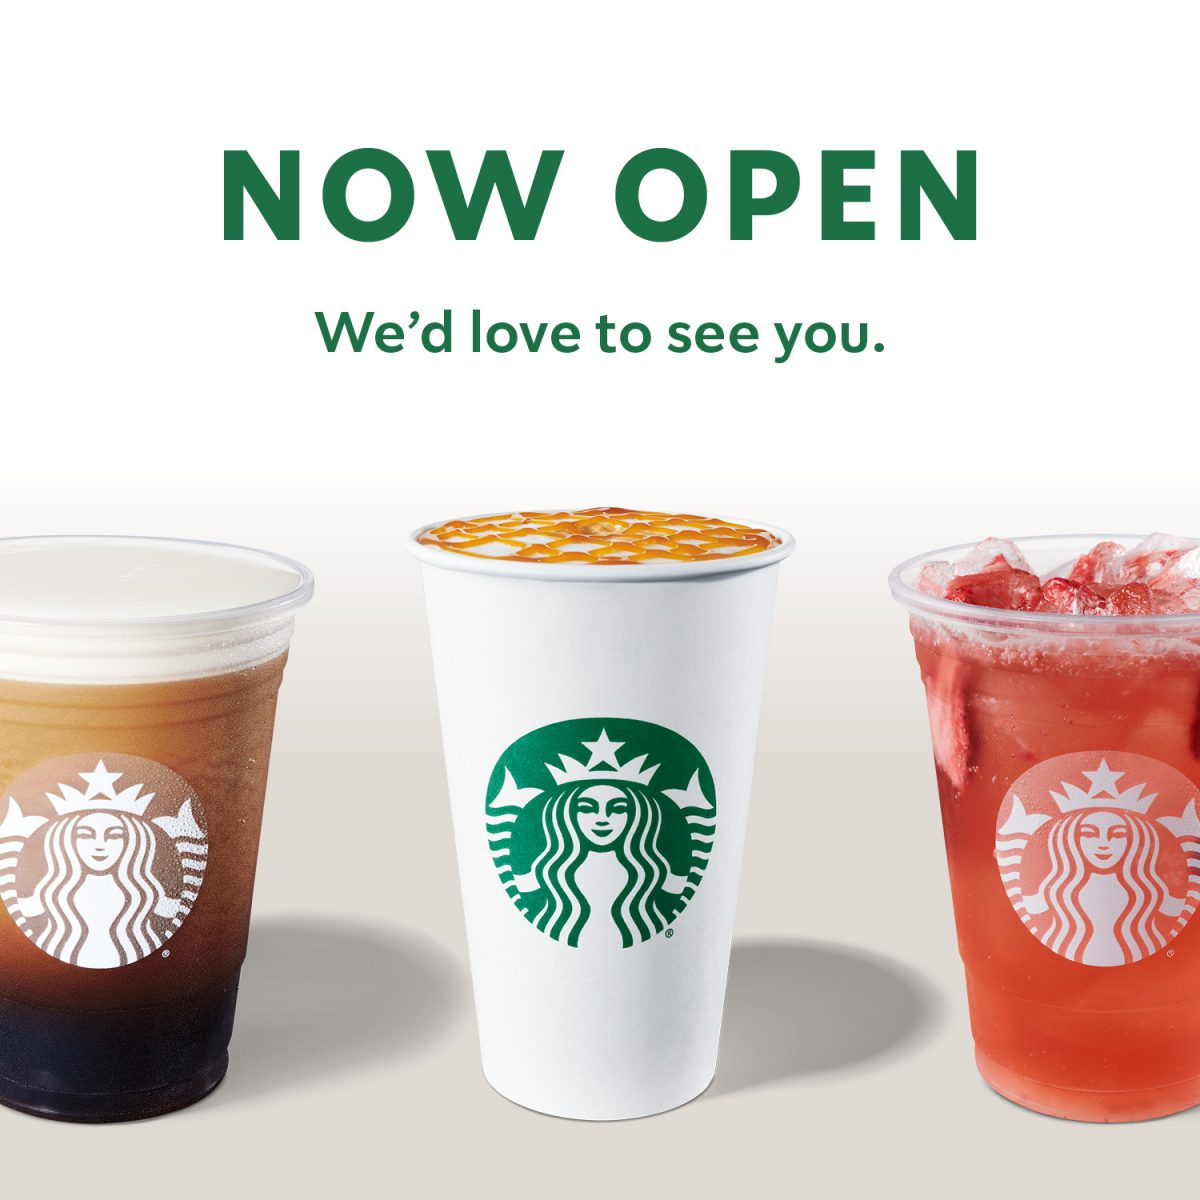 Starbucks Now Open